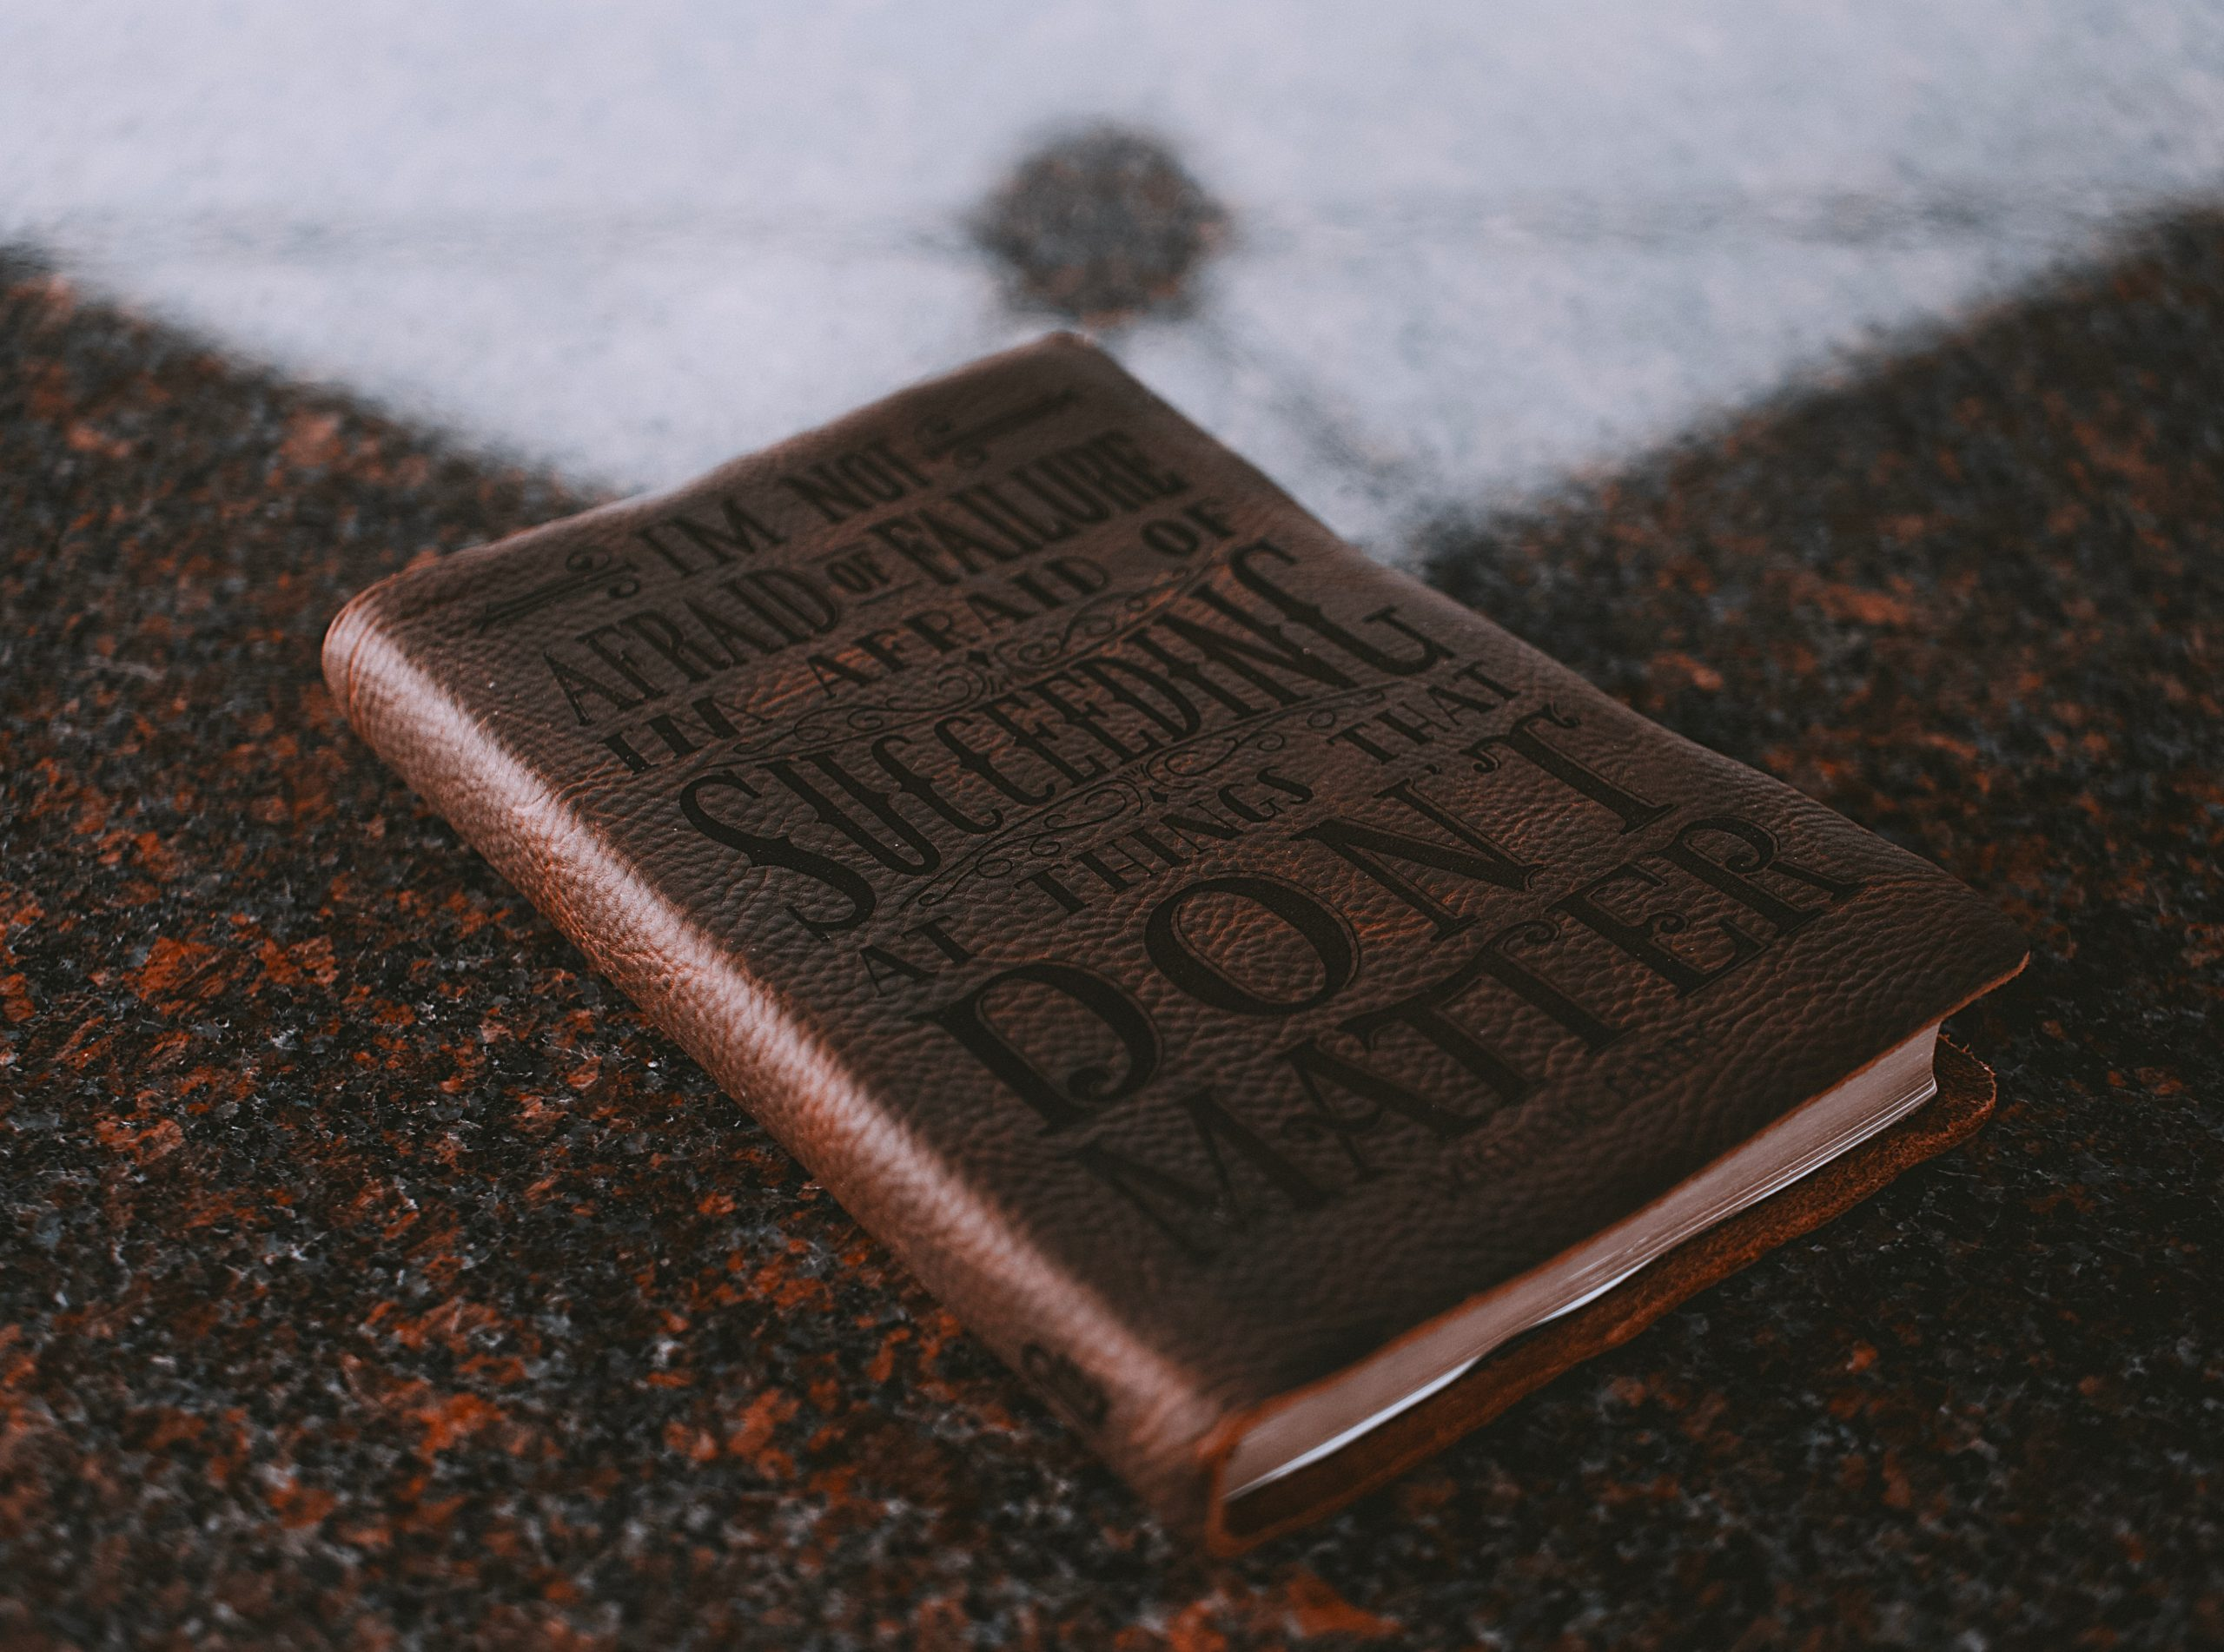 Photo of a battered notebook or diary to use as writing inspiration